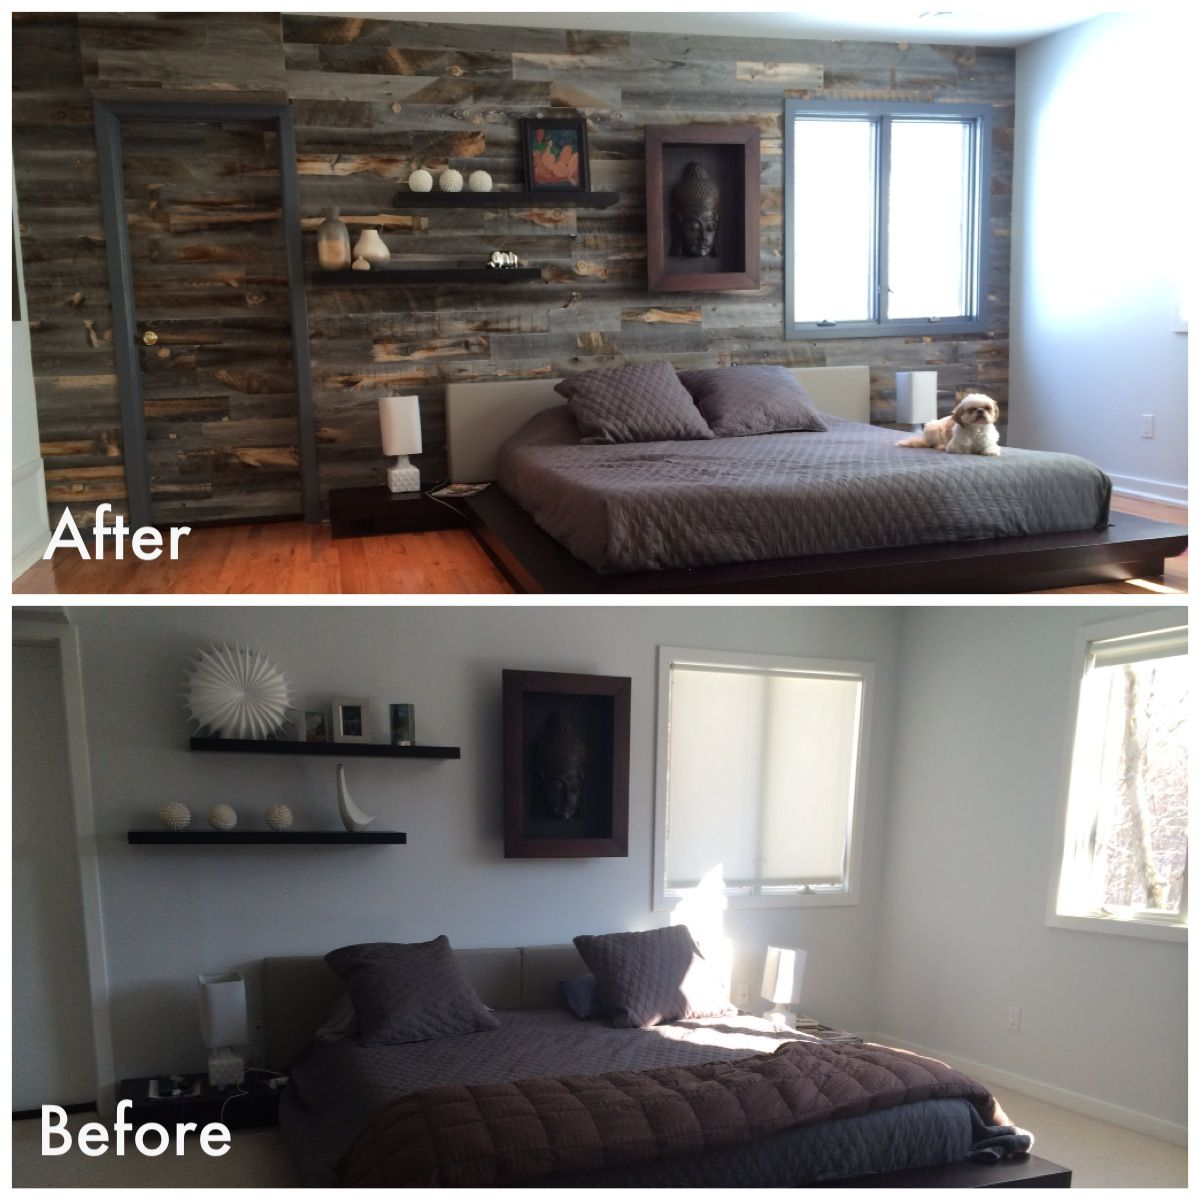 Wood Accent Wall Master Bedroom: #Stikwood #DIY #Before&After Wood Wall. Reclaimed